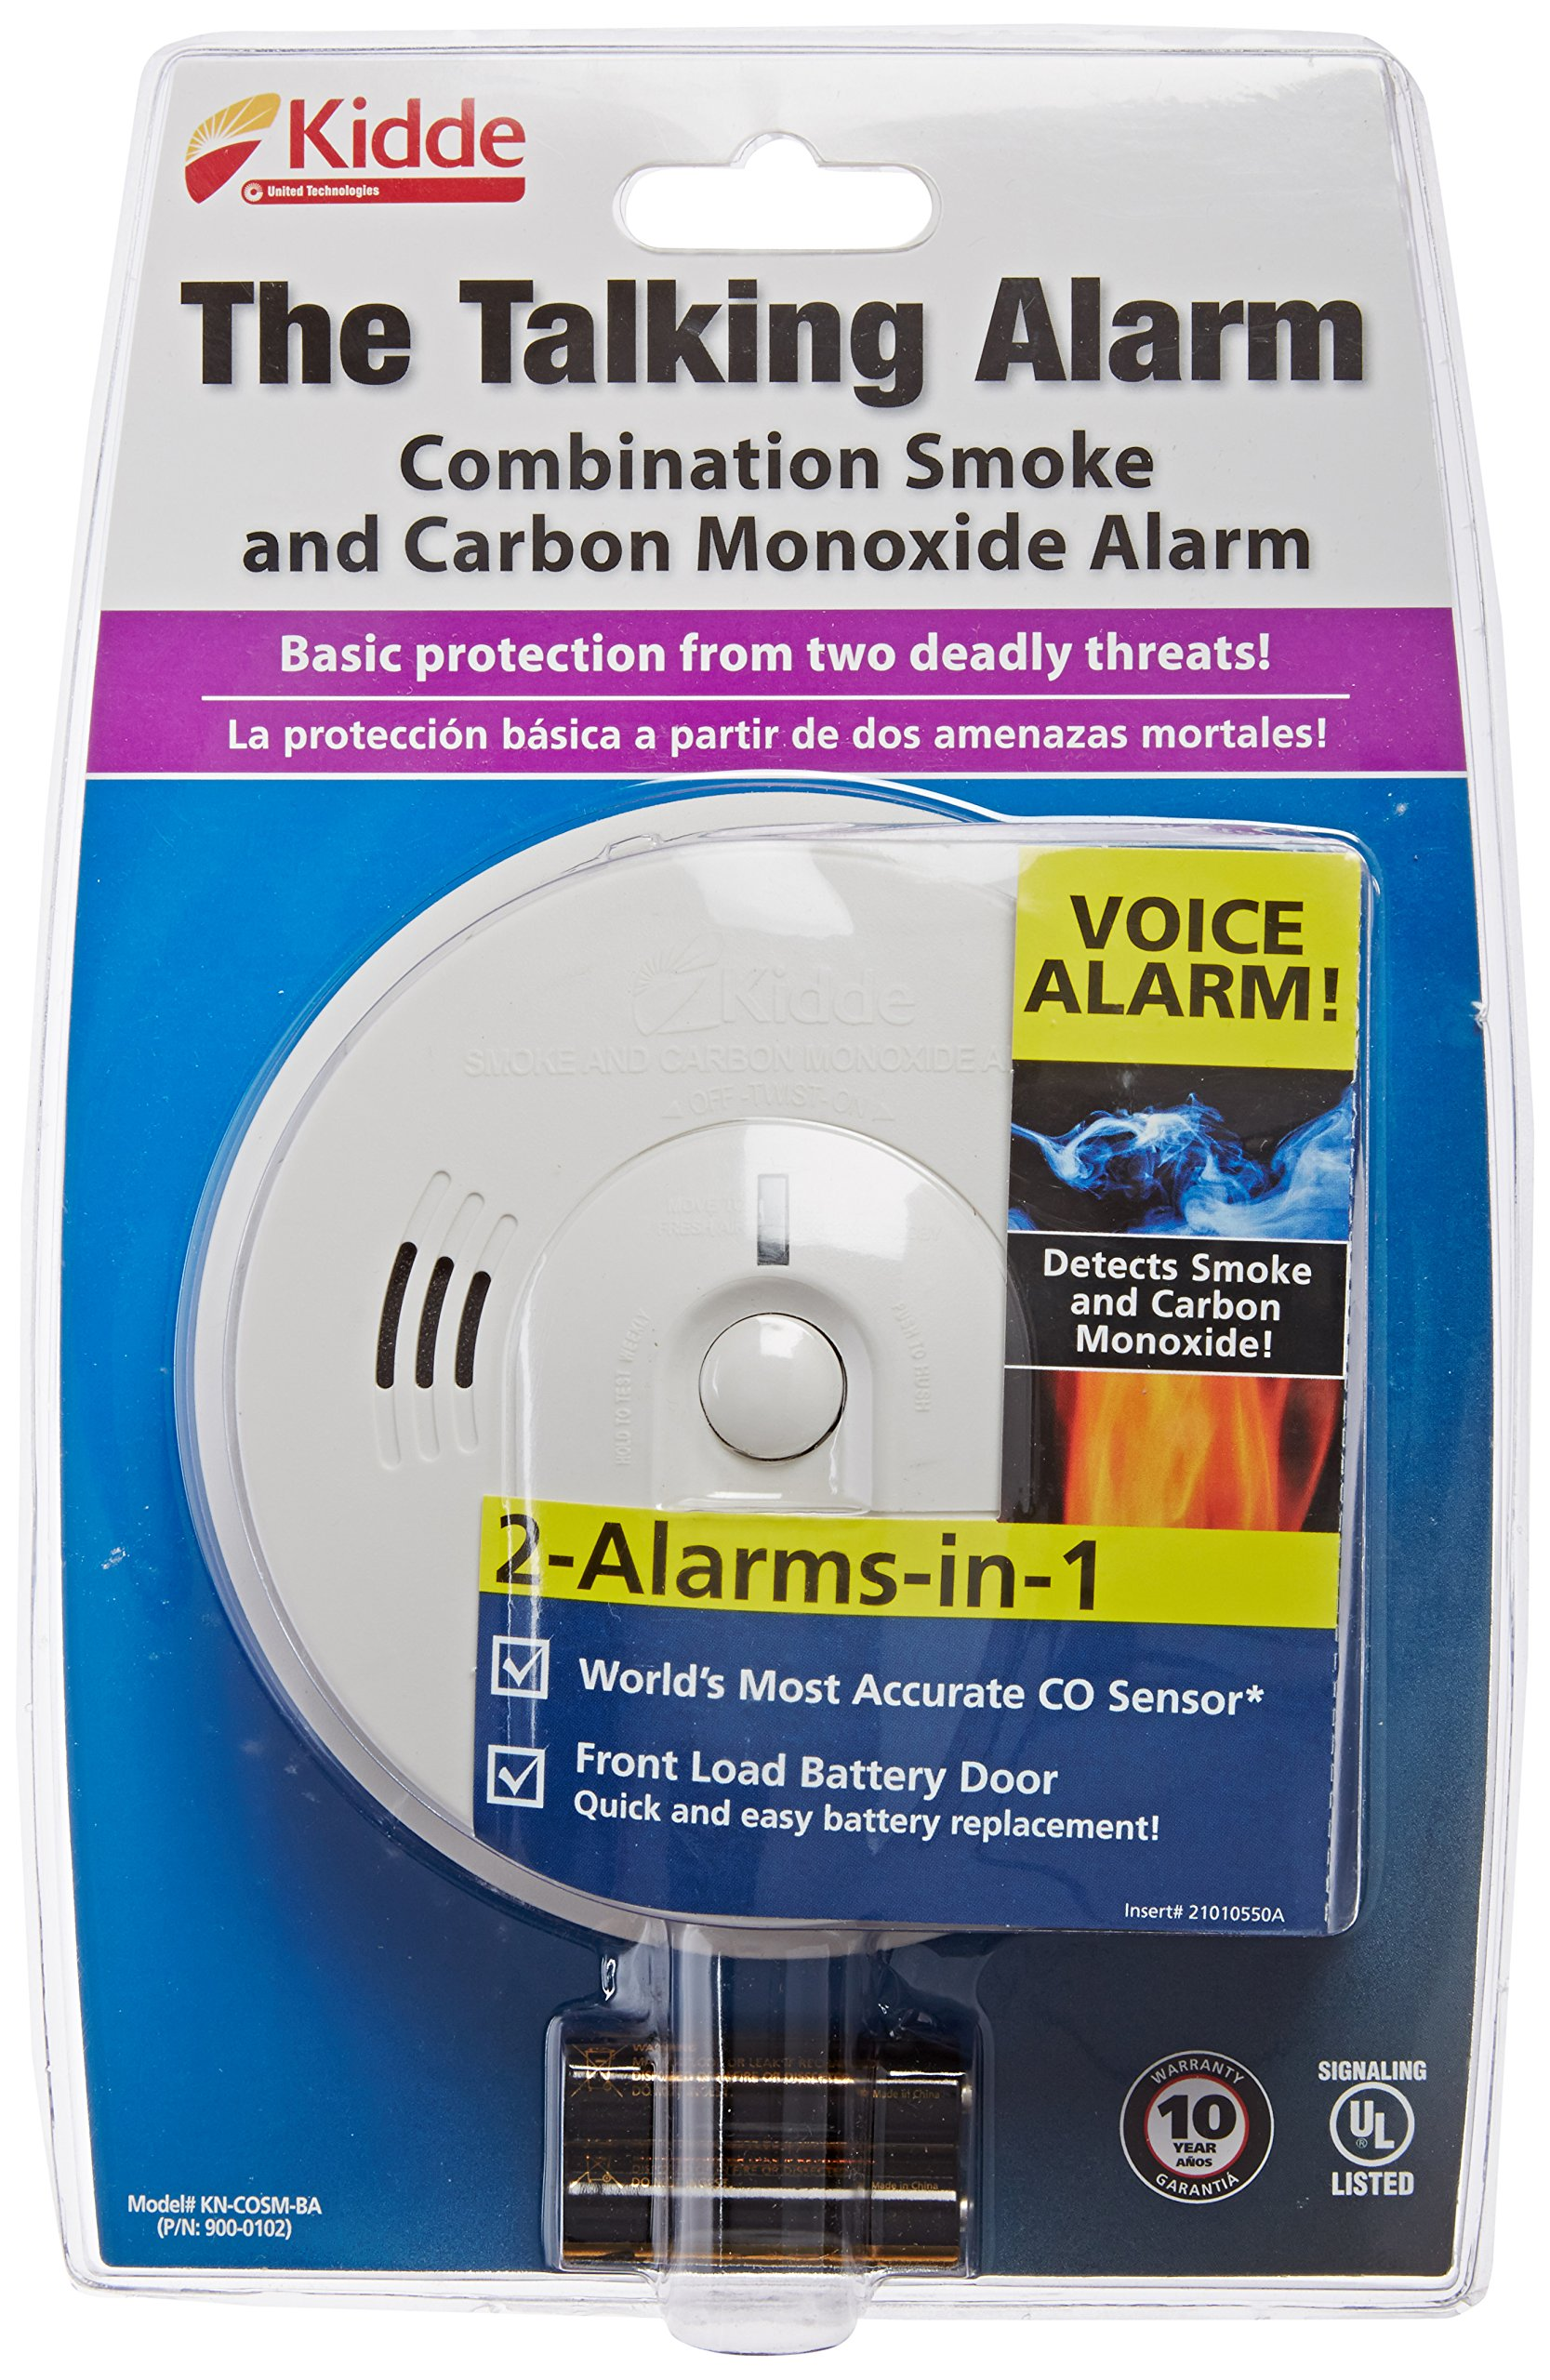 Kidde 408-900-0102-02 KN-COSM-B Battery-Operated Combination Carbon Monoxide and Smoke Alarm with Talking Alarm